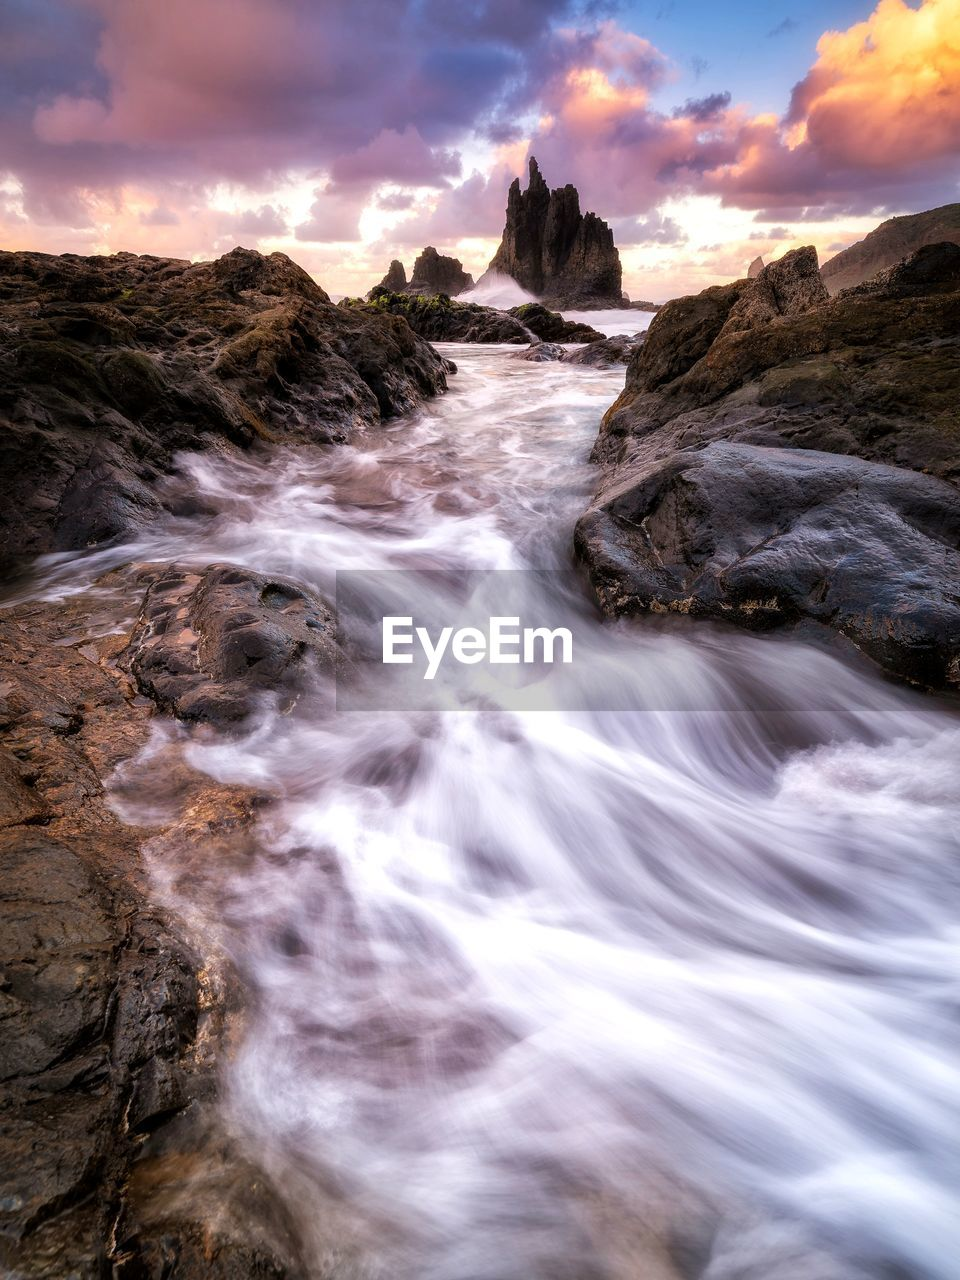 scenics - nature, beauty in nature, rock, motion, water, sky, long exposure, solid, rock - object, cloud - sky, rock formation, sunset, nature, flowing water, blurred motion, no people, sea, land, waterfall, outdoors, flowing, power in nature